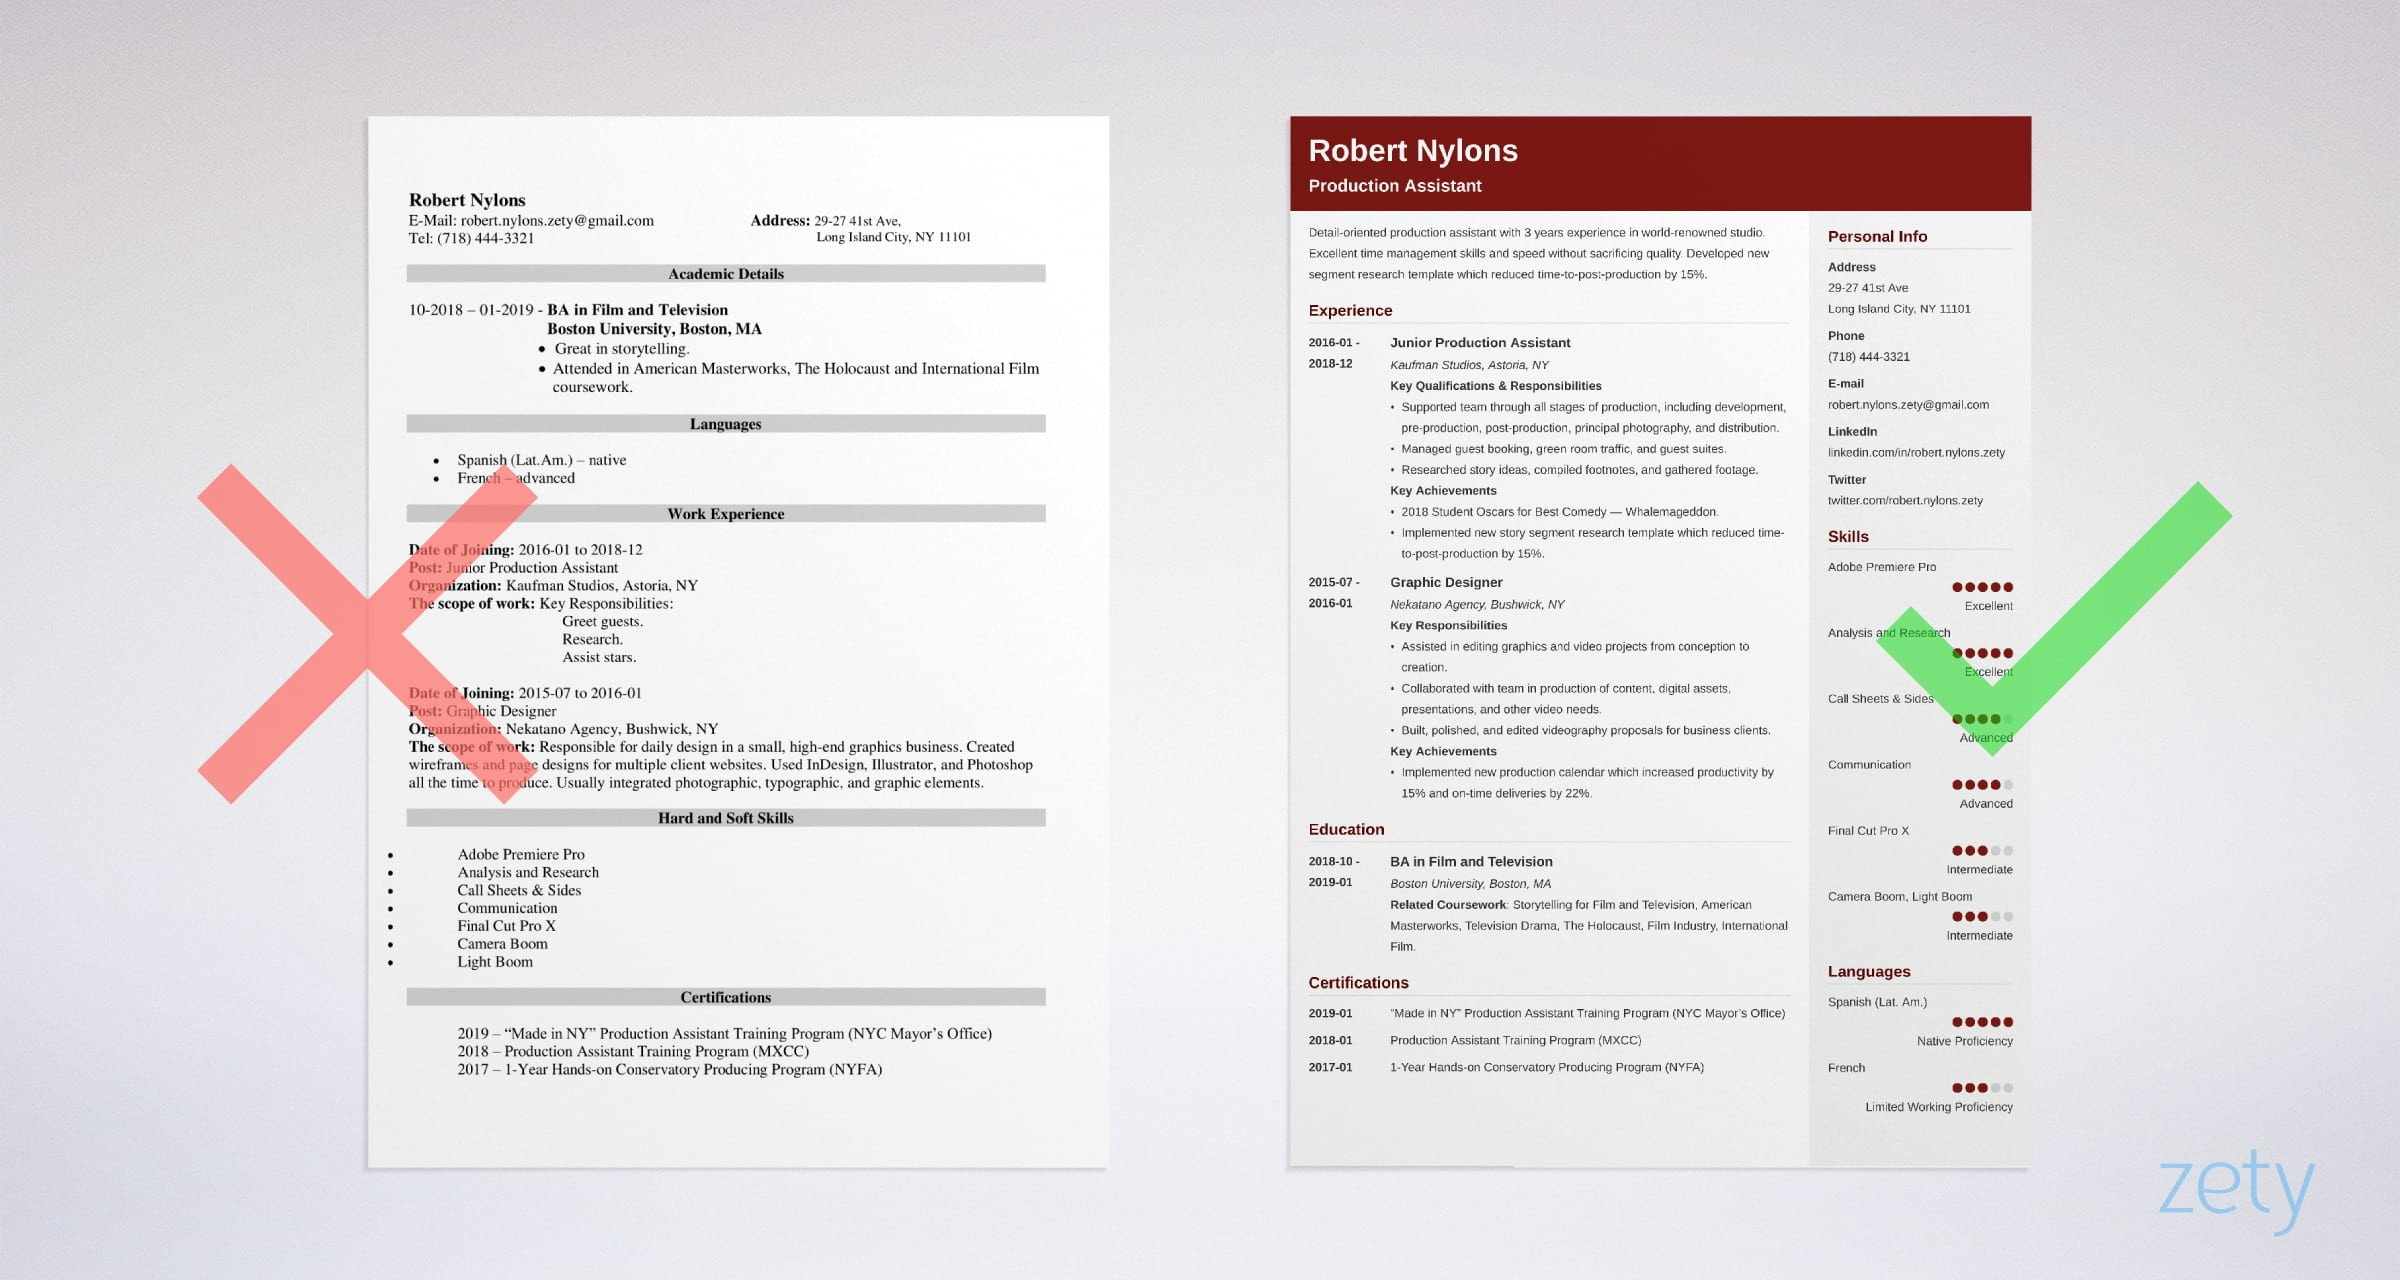 production assistant resume examples skills for film or tv template example bank Resume Production Assistant Resume Template